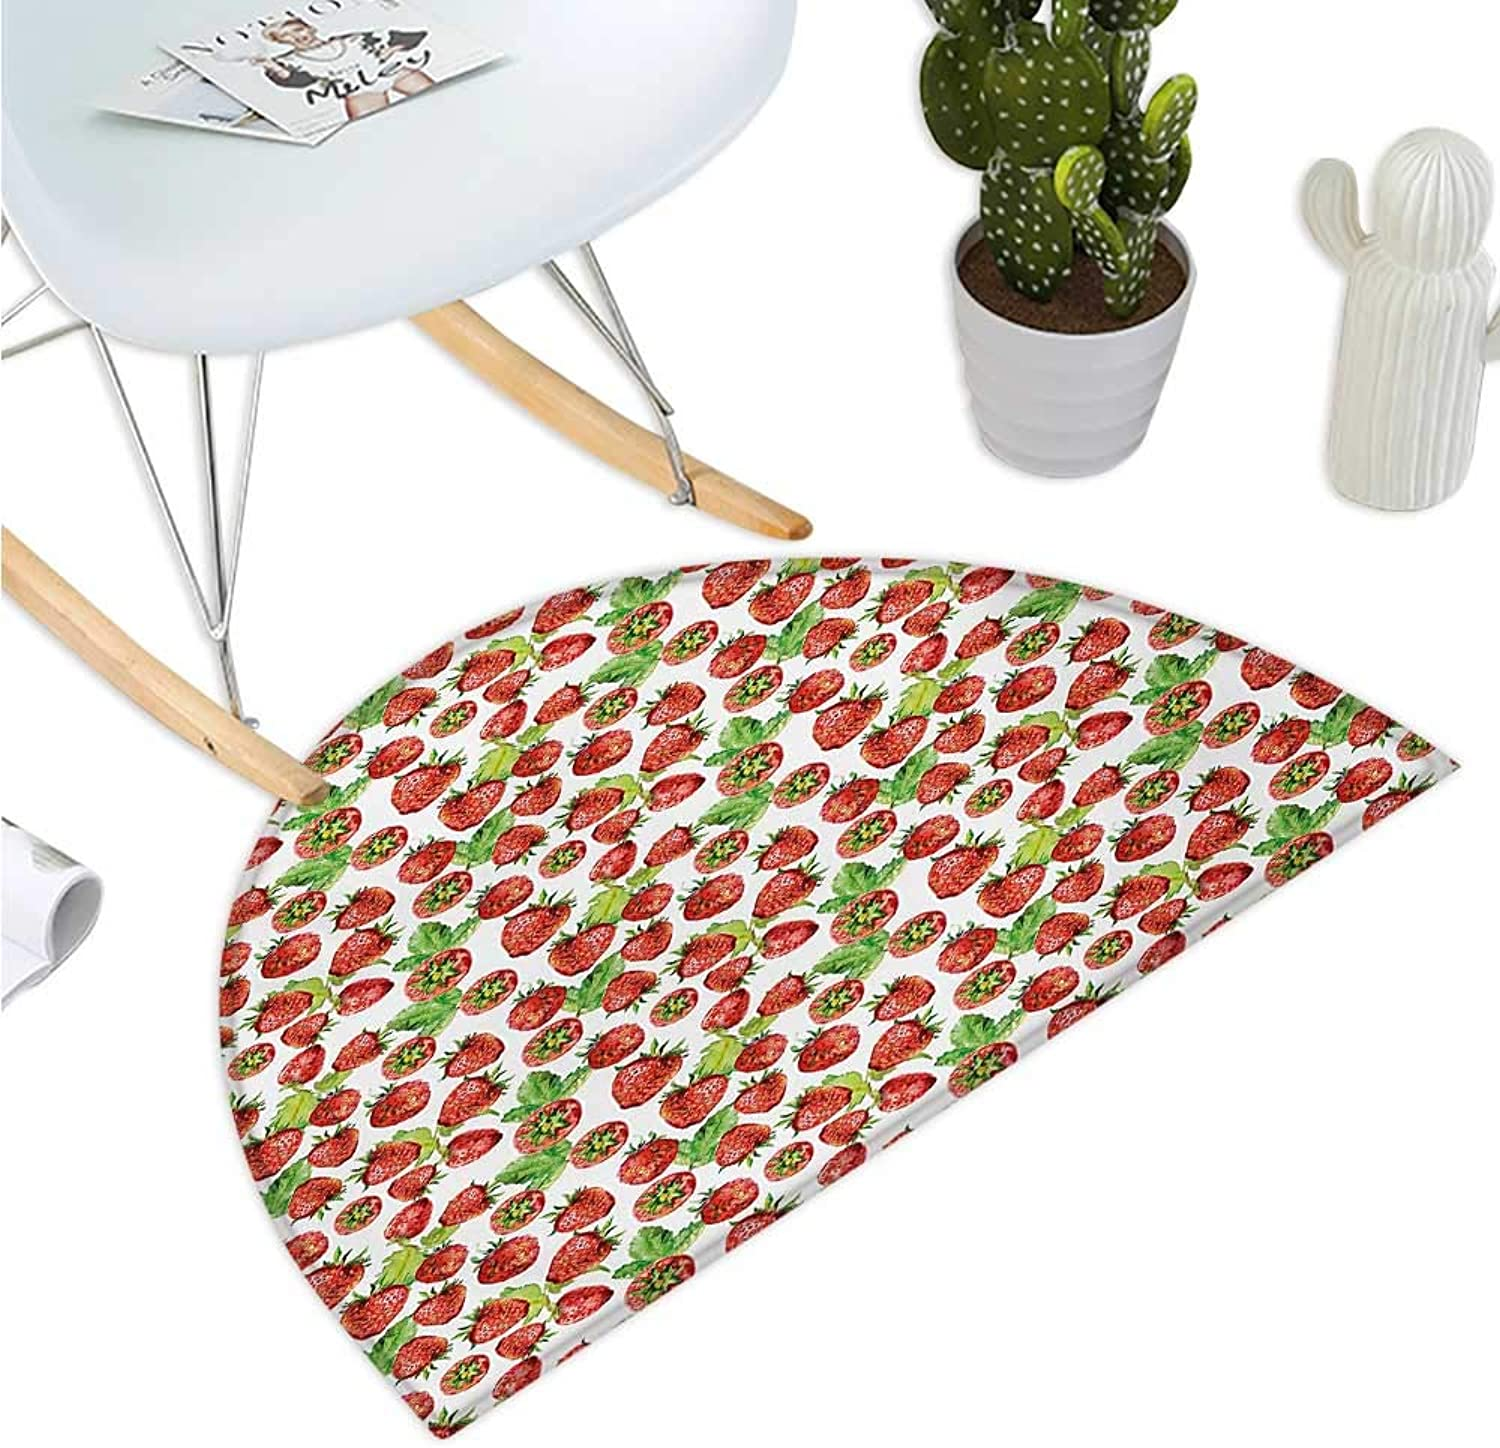 Kitchen Semicircle Doormat Vibrant Strawberry Figures Watercolor Stylized Yummy Cute Sweet Fruits Artwork Entry Door Mat H 39.3  xD 59  Lime Green Red